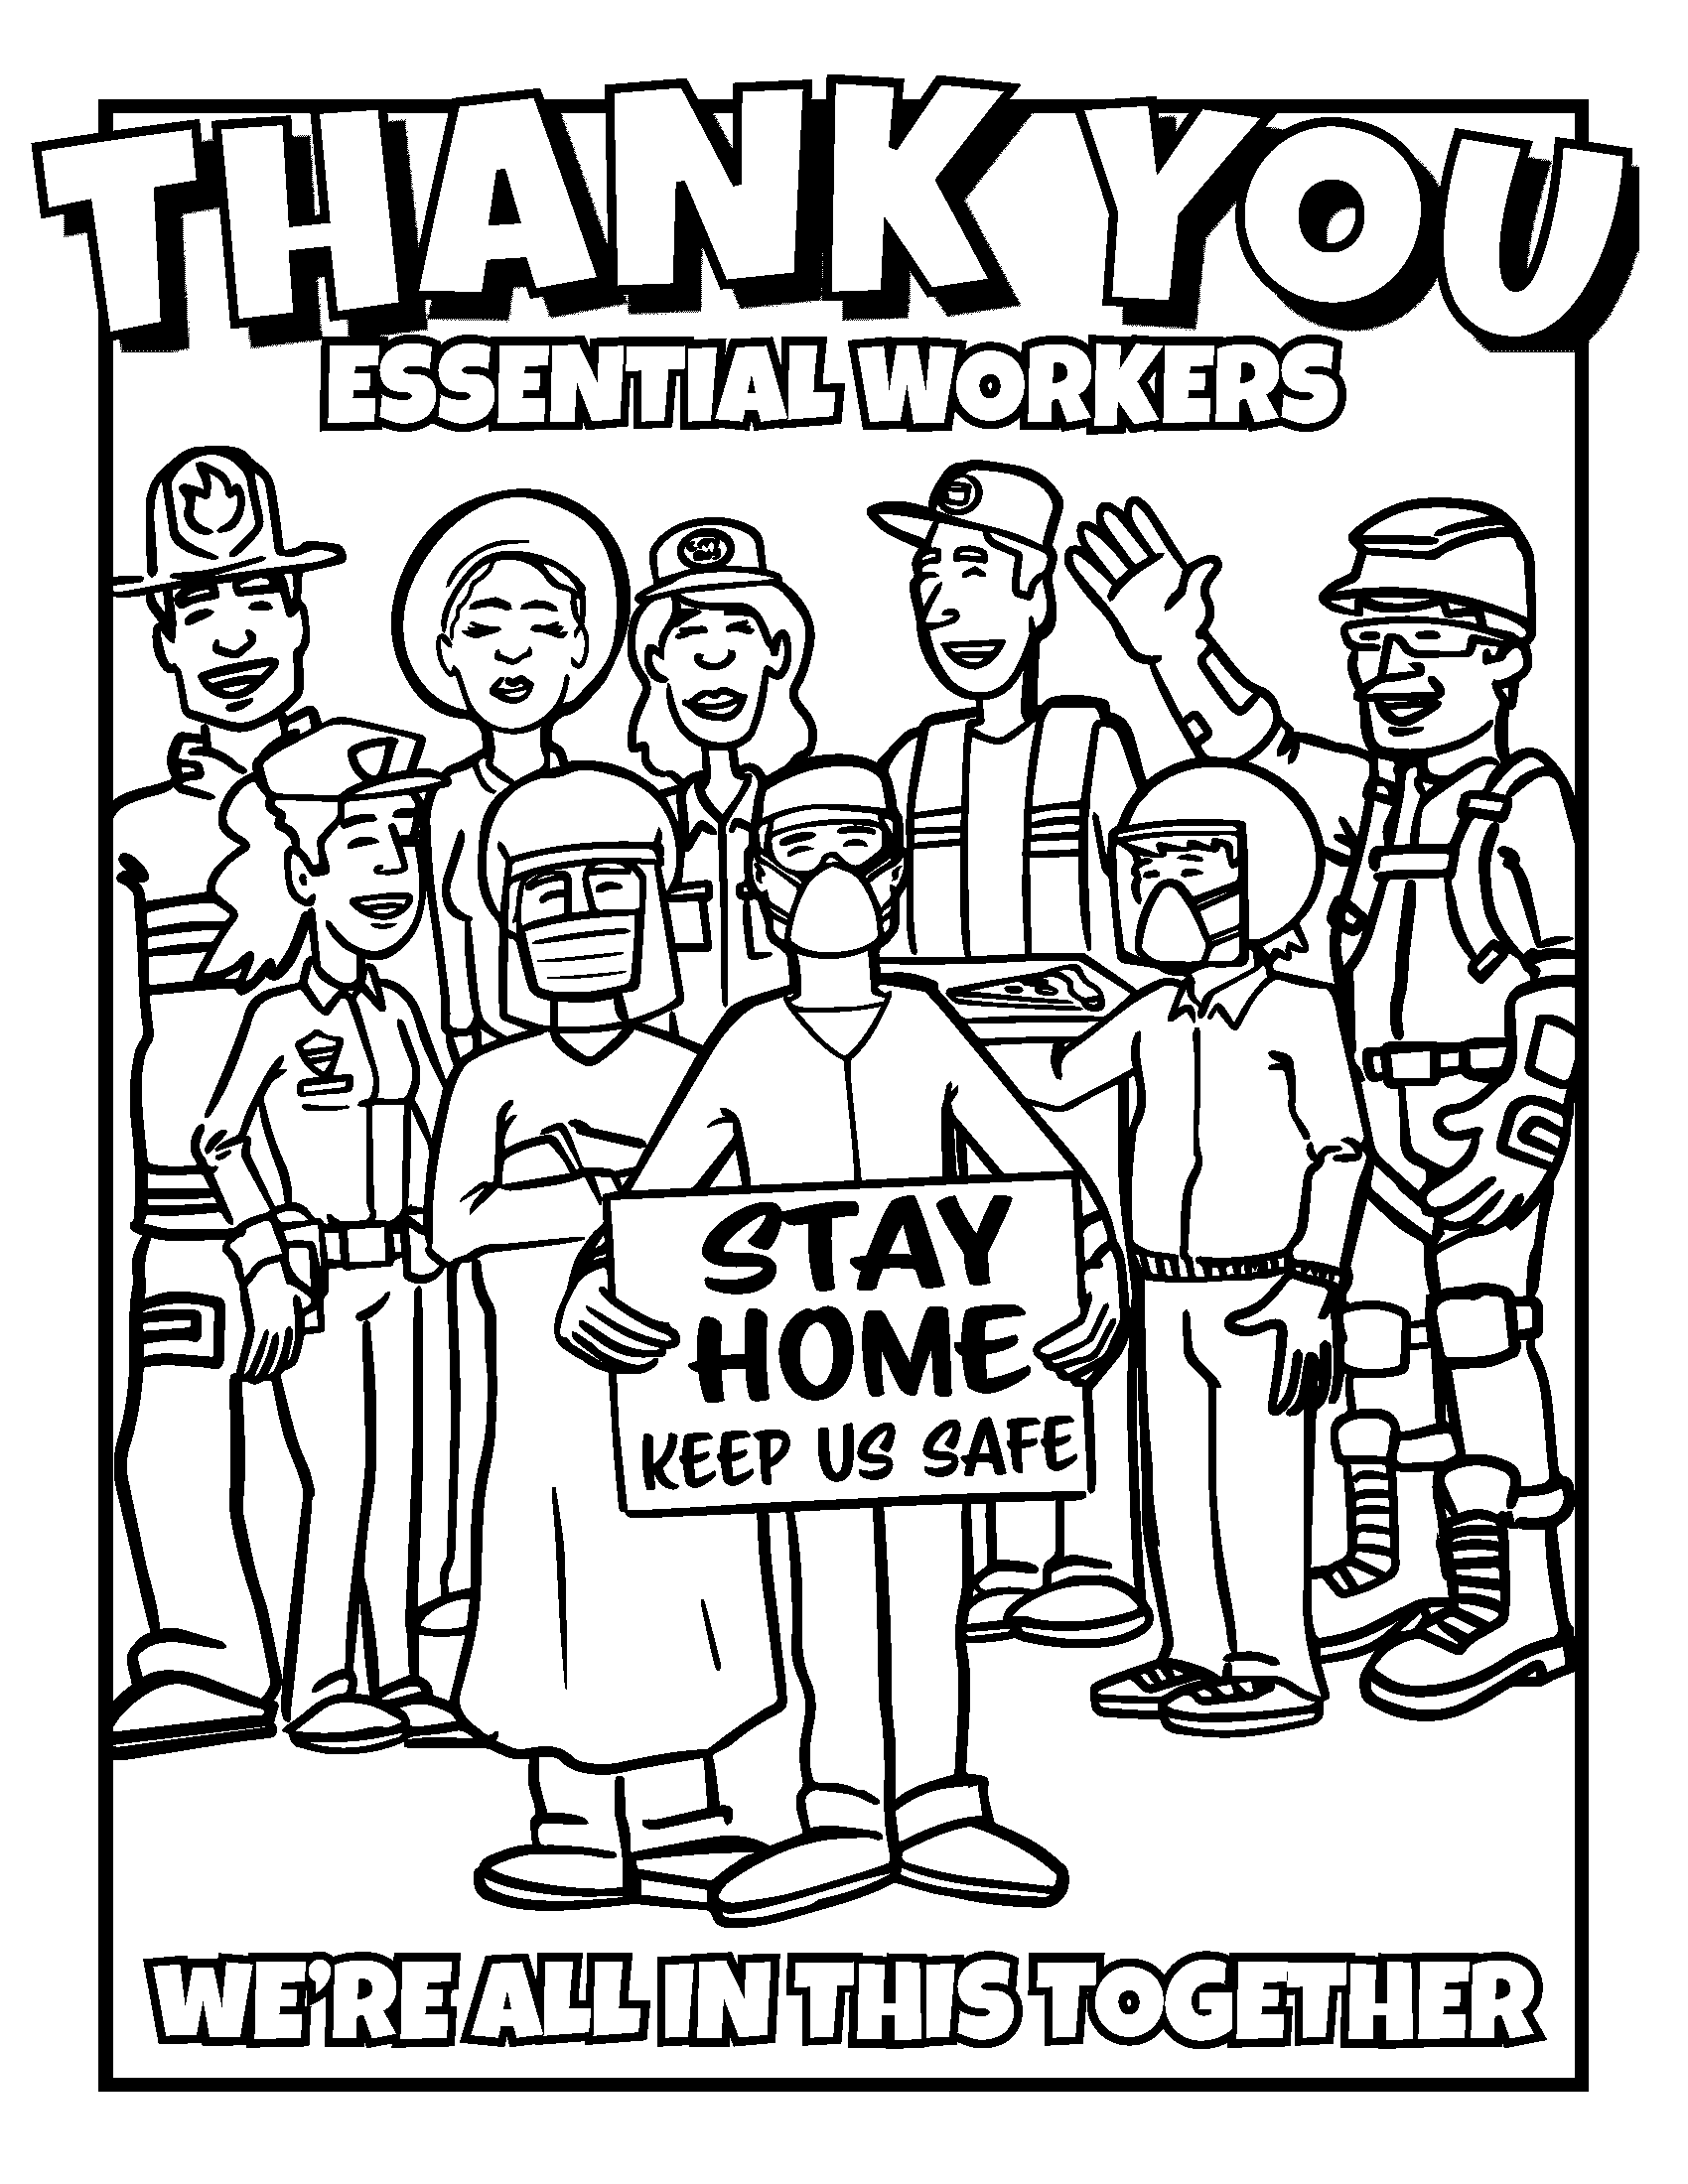 Thank You Essential Workers Coloring Sheet